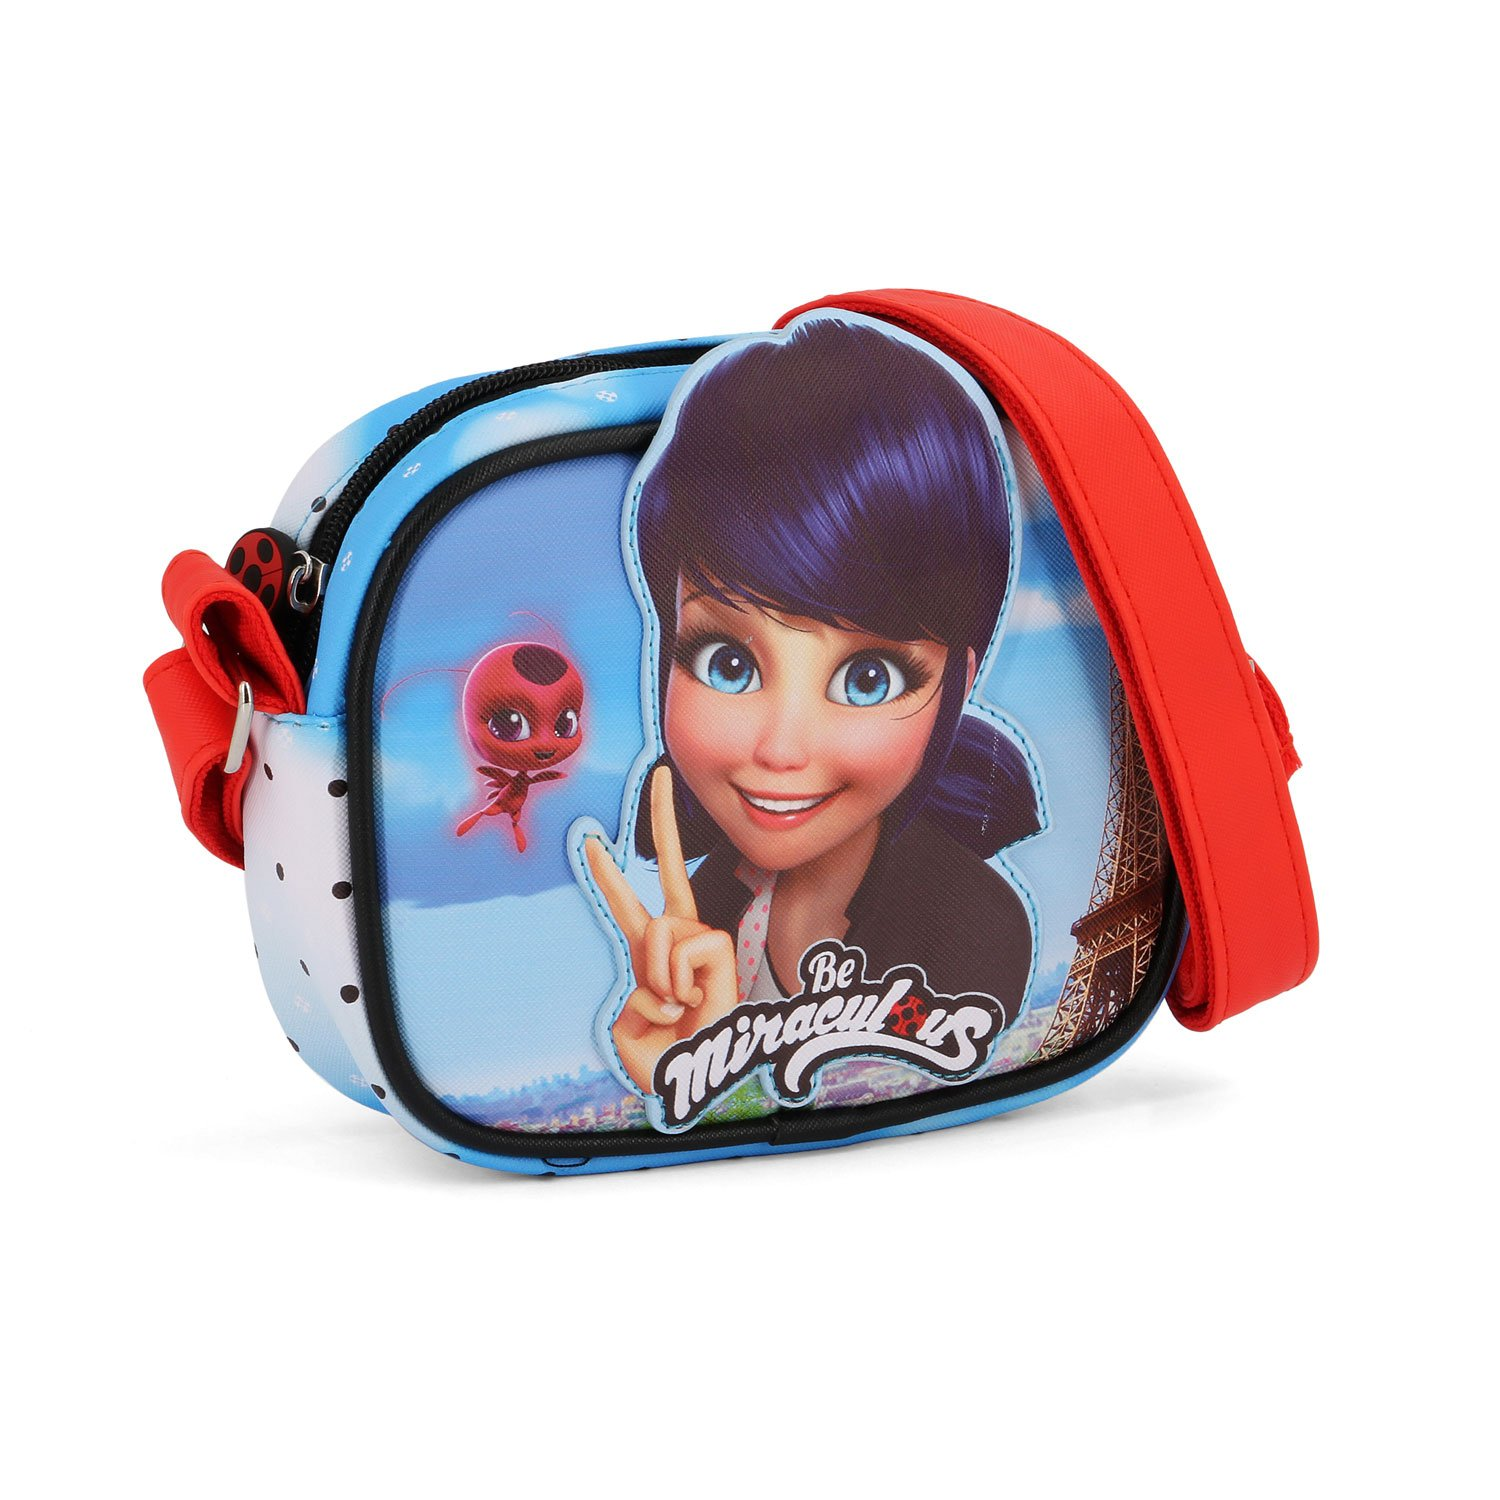 Karactermania Ladybug Courage-Sac à Bandoulière Basic Carré Go Borsa Messenger, 18 cm, Blu (Blue) 37386